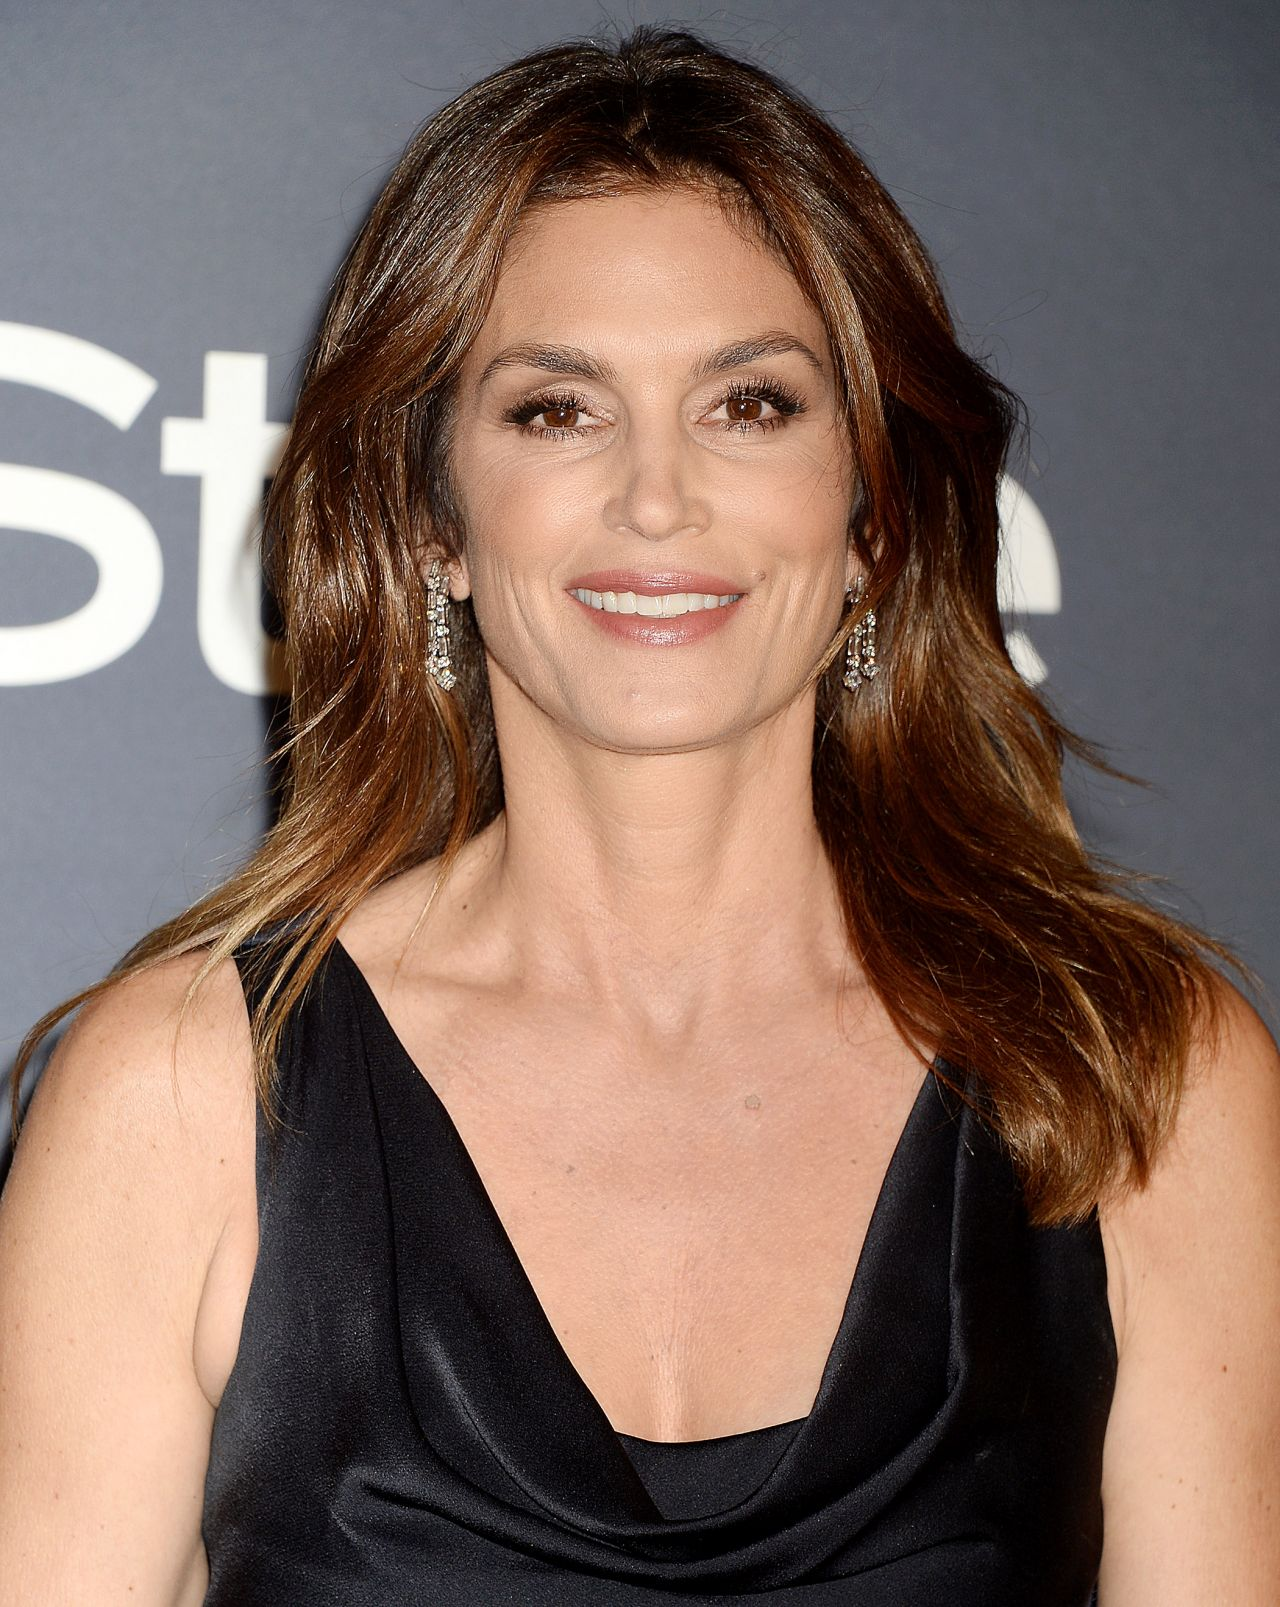 Who Is Cindy Crawford